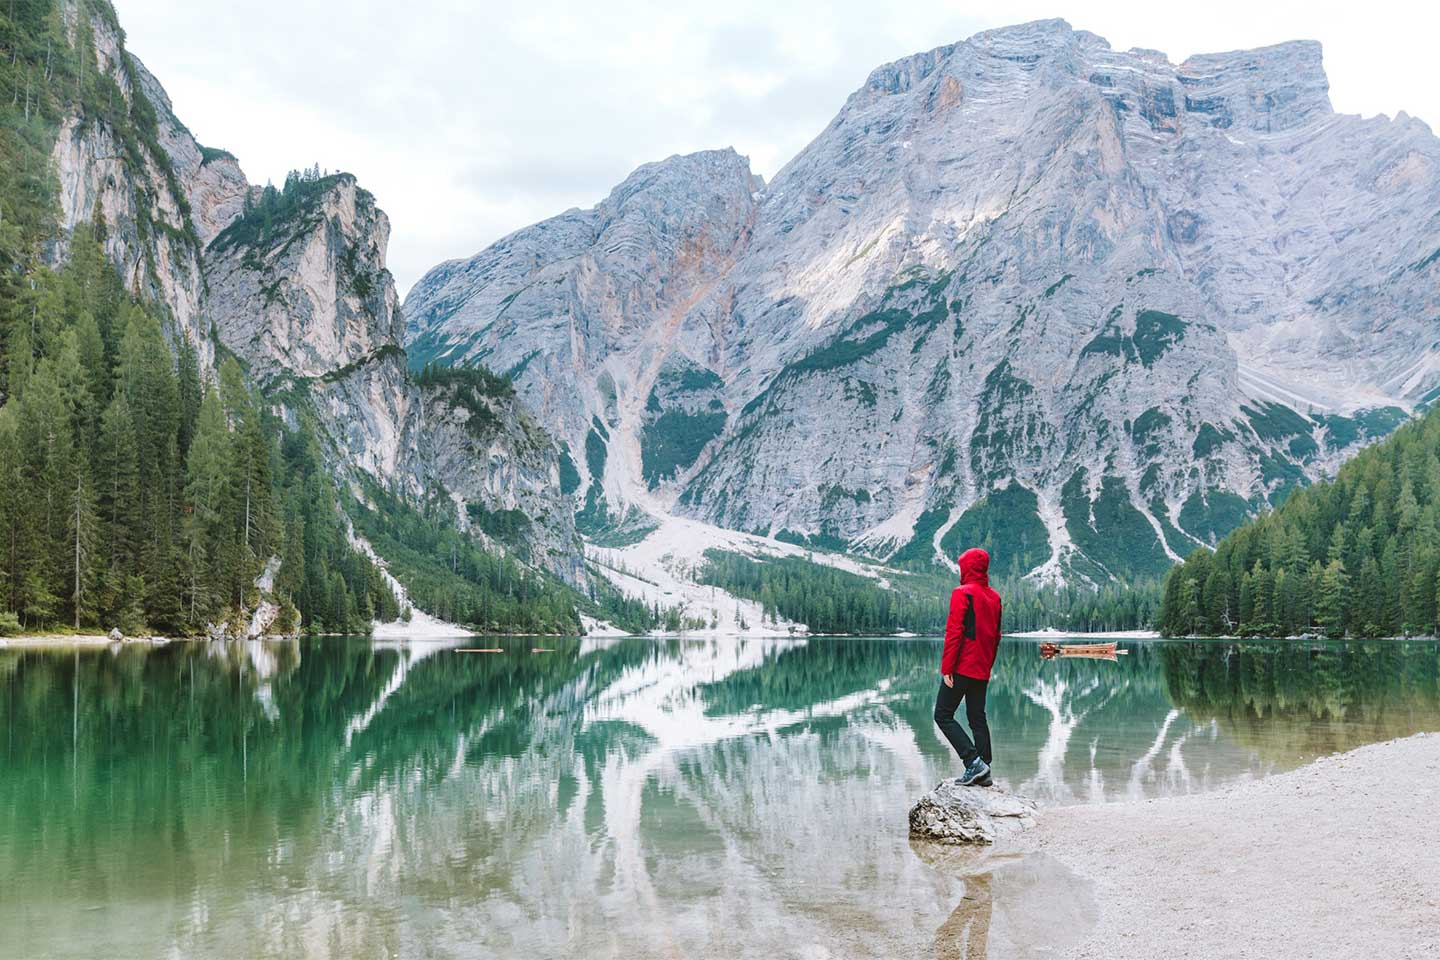 A man in a road coat stands on a rock next to a crystal clear lake.  Surrounding the lake are beautiful rocky mountains.